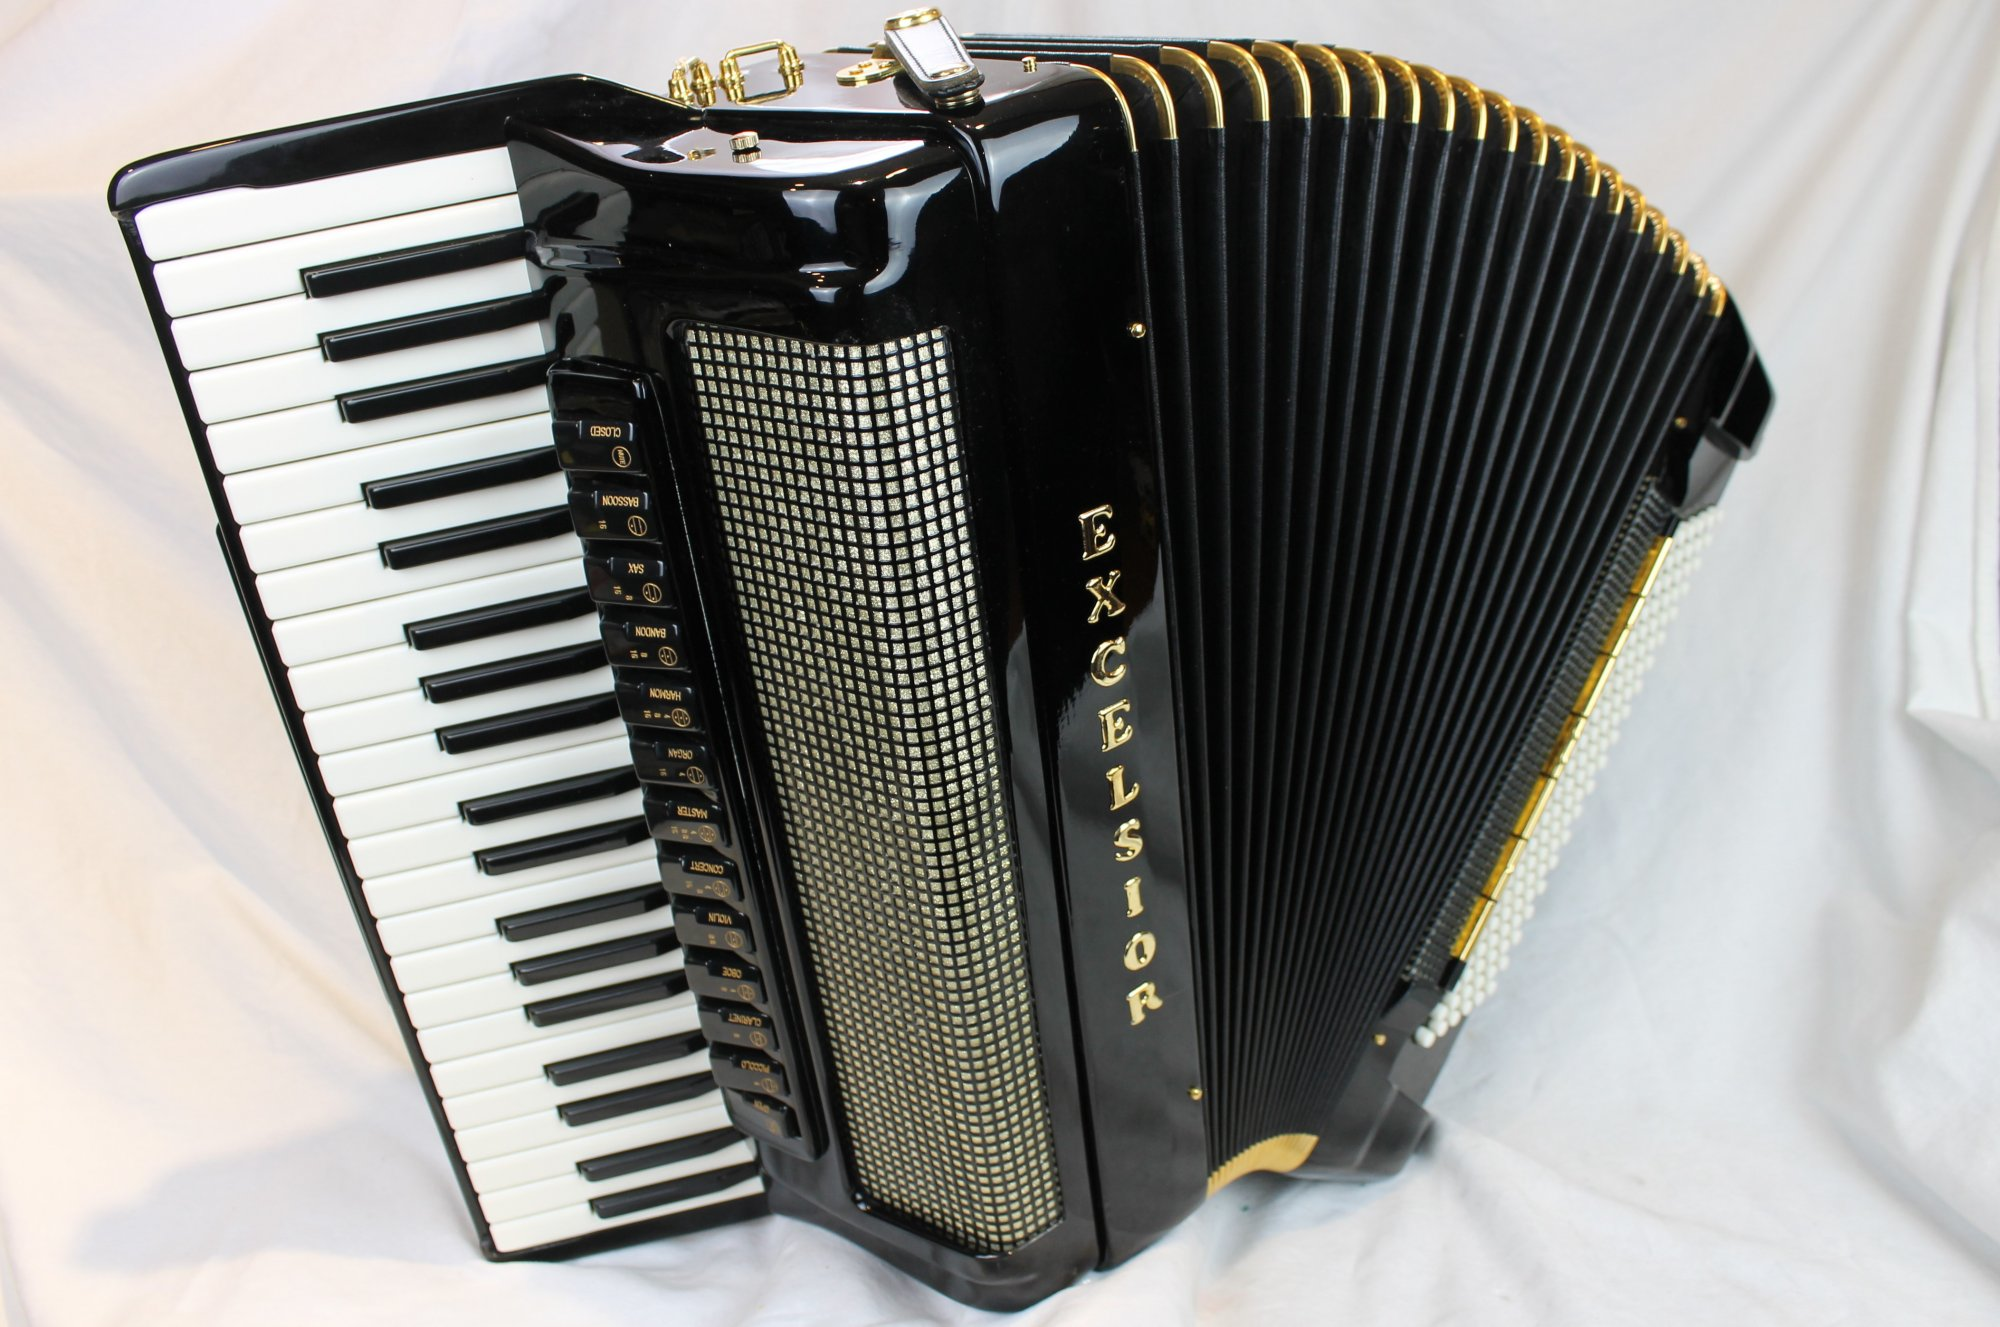 4158 - Like New Black Excelsior Symphony Gold Piano Accordion LMMH 42 120